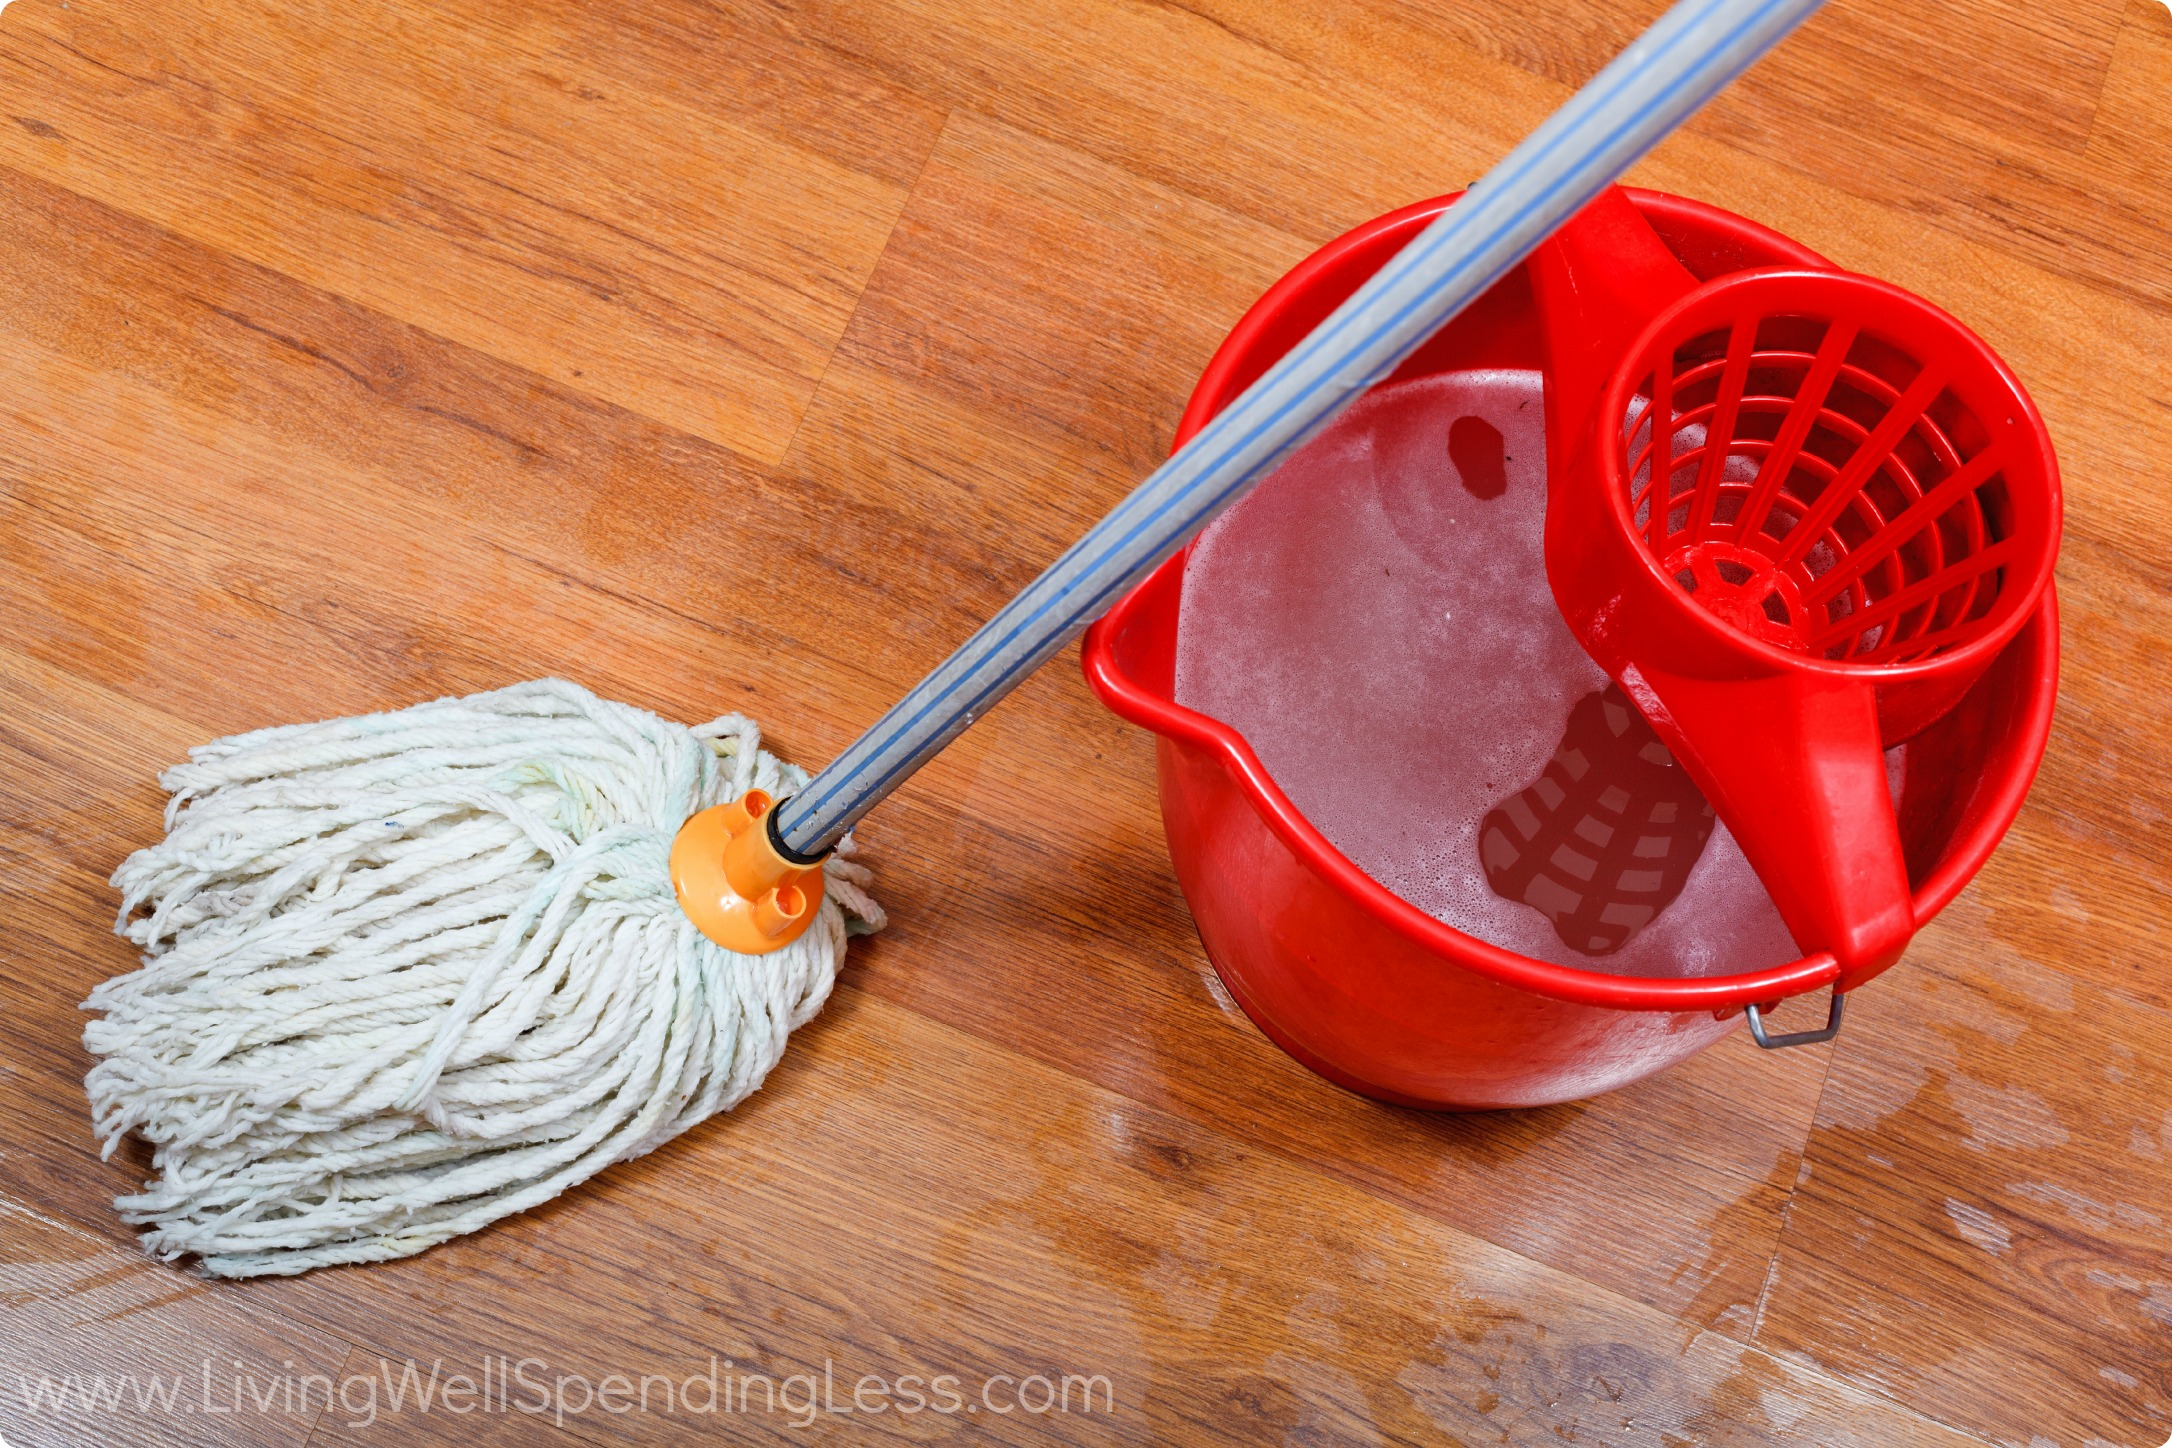 Cleaning Of Wet Floors By Mop And Red Bucket With Washing